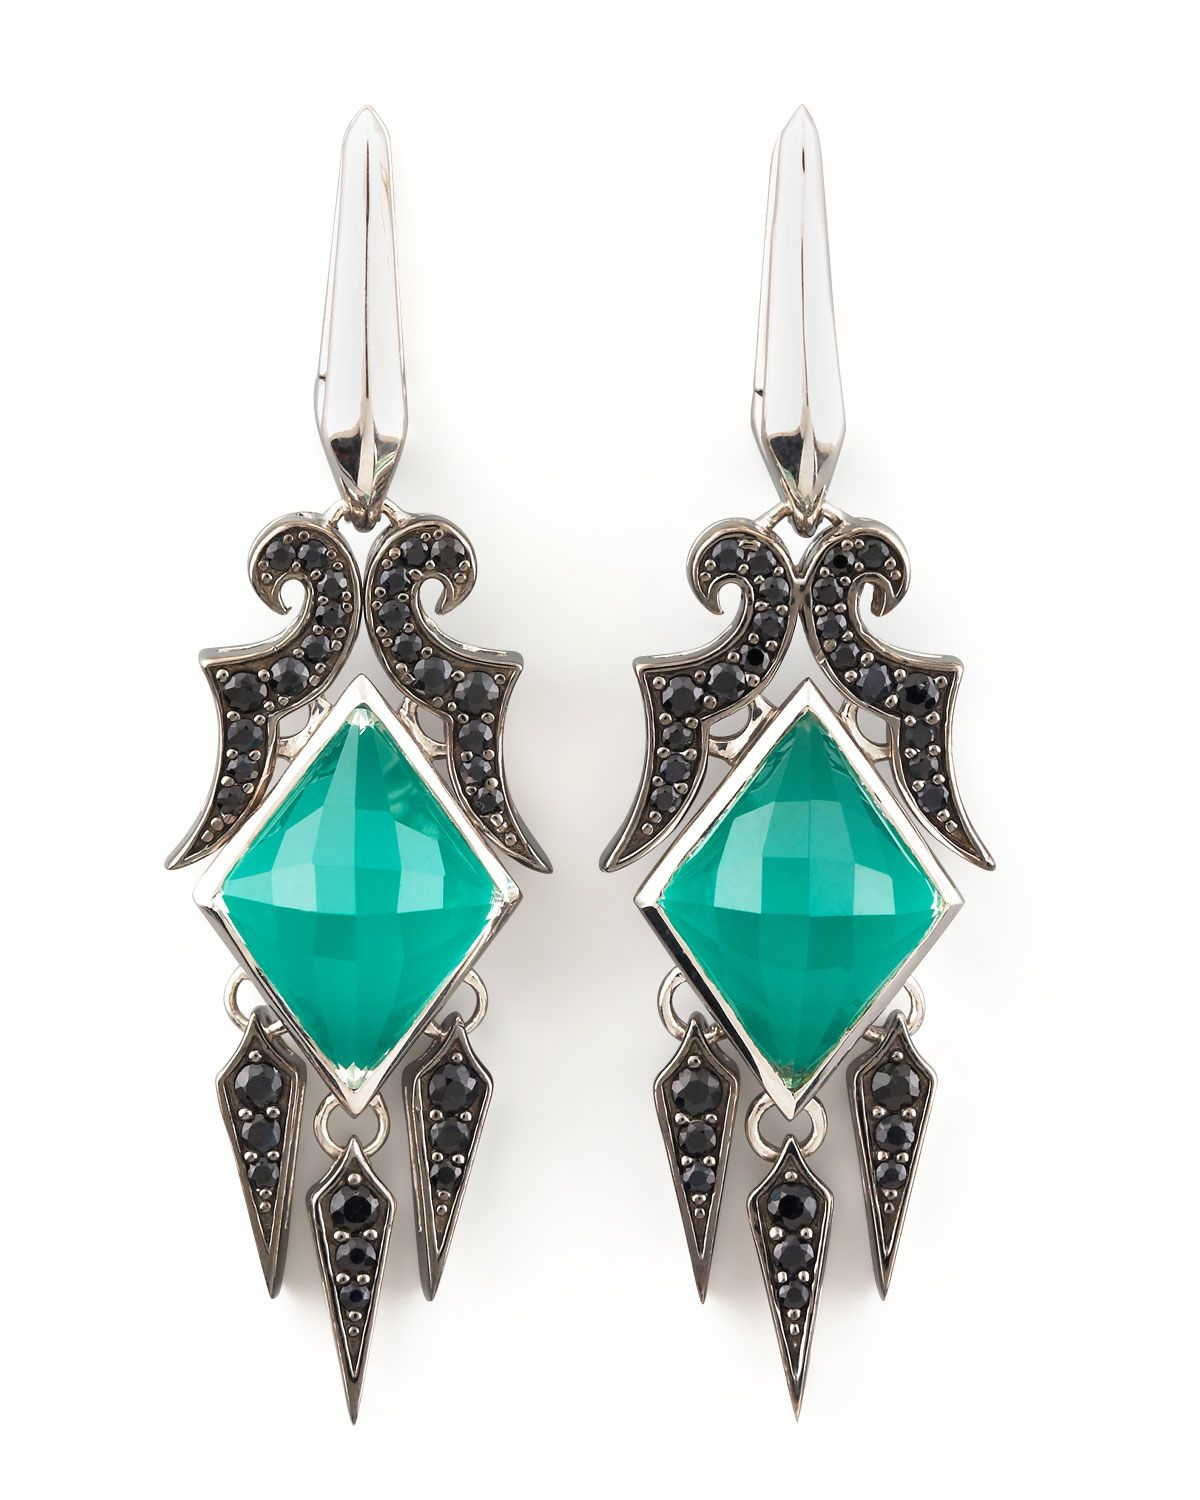 Glowing green, simulated chrysoprase overlaid with intensely faceted clear quartz and surrounded by darkly sparkling black sapphires gives these Stephen Webster earrings a misty, mysterious sensibility.